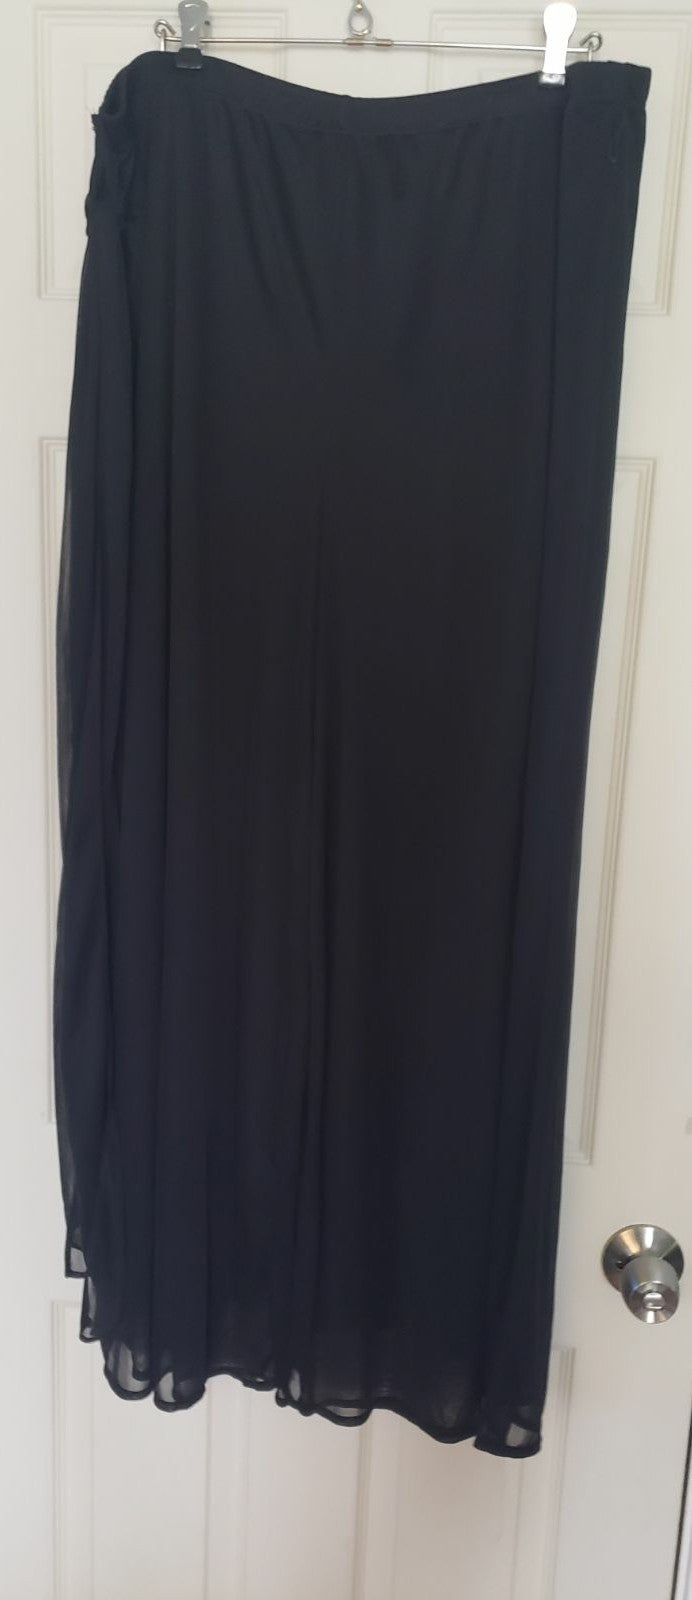 Studio 1940 Black Wide Leg Pants 22/24W